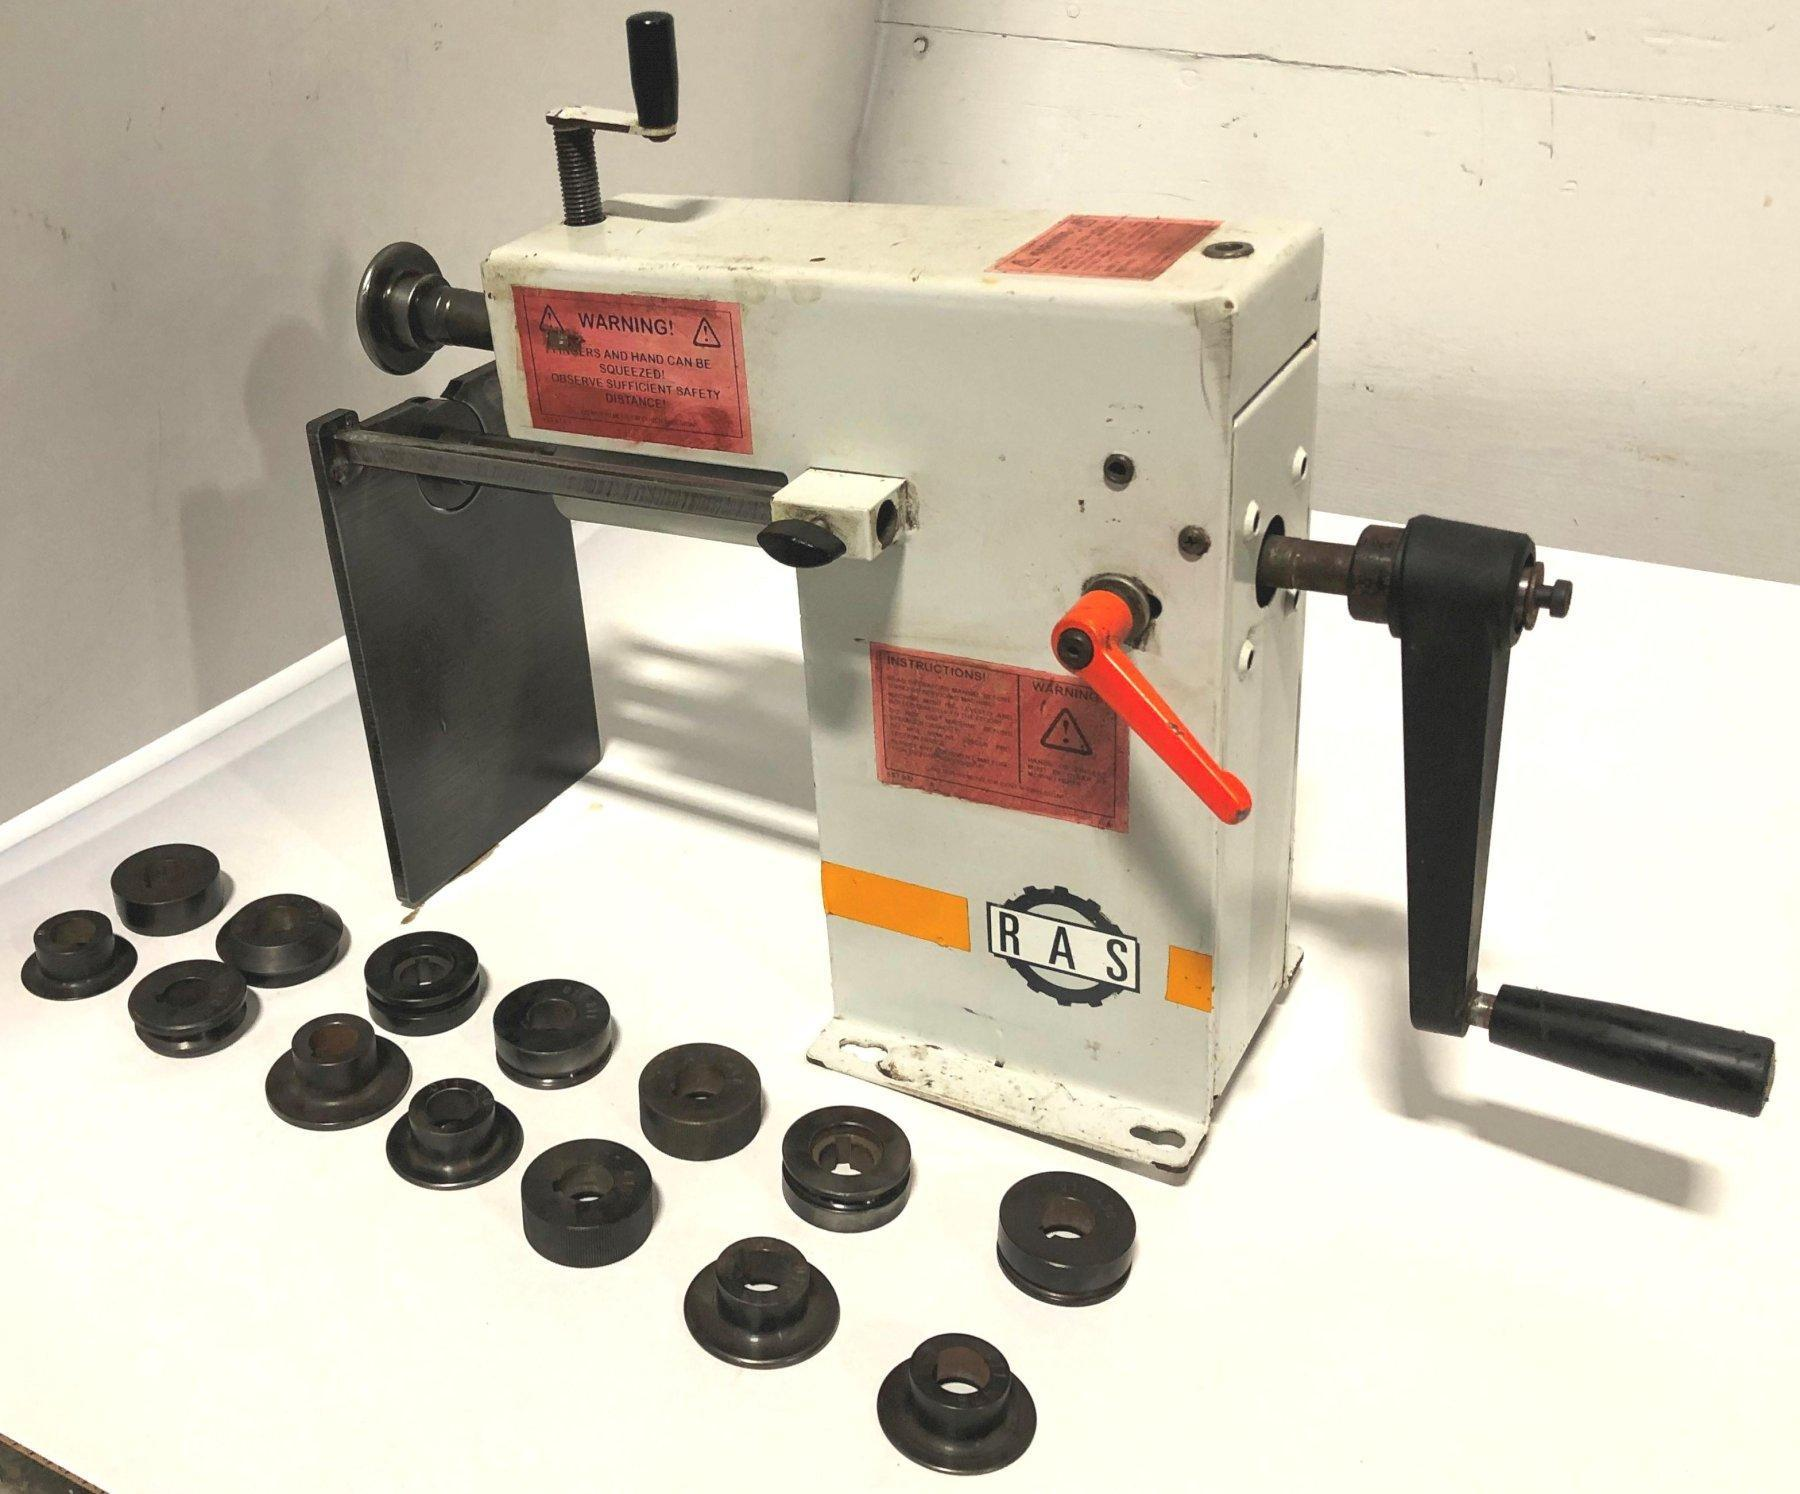 RAS Combination Rotary Machine No. 11.15, Manual, Tooling